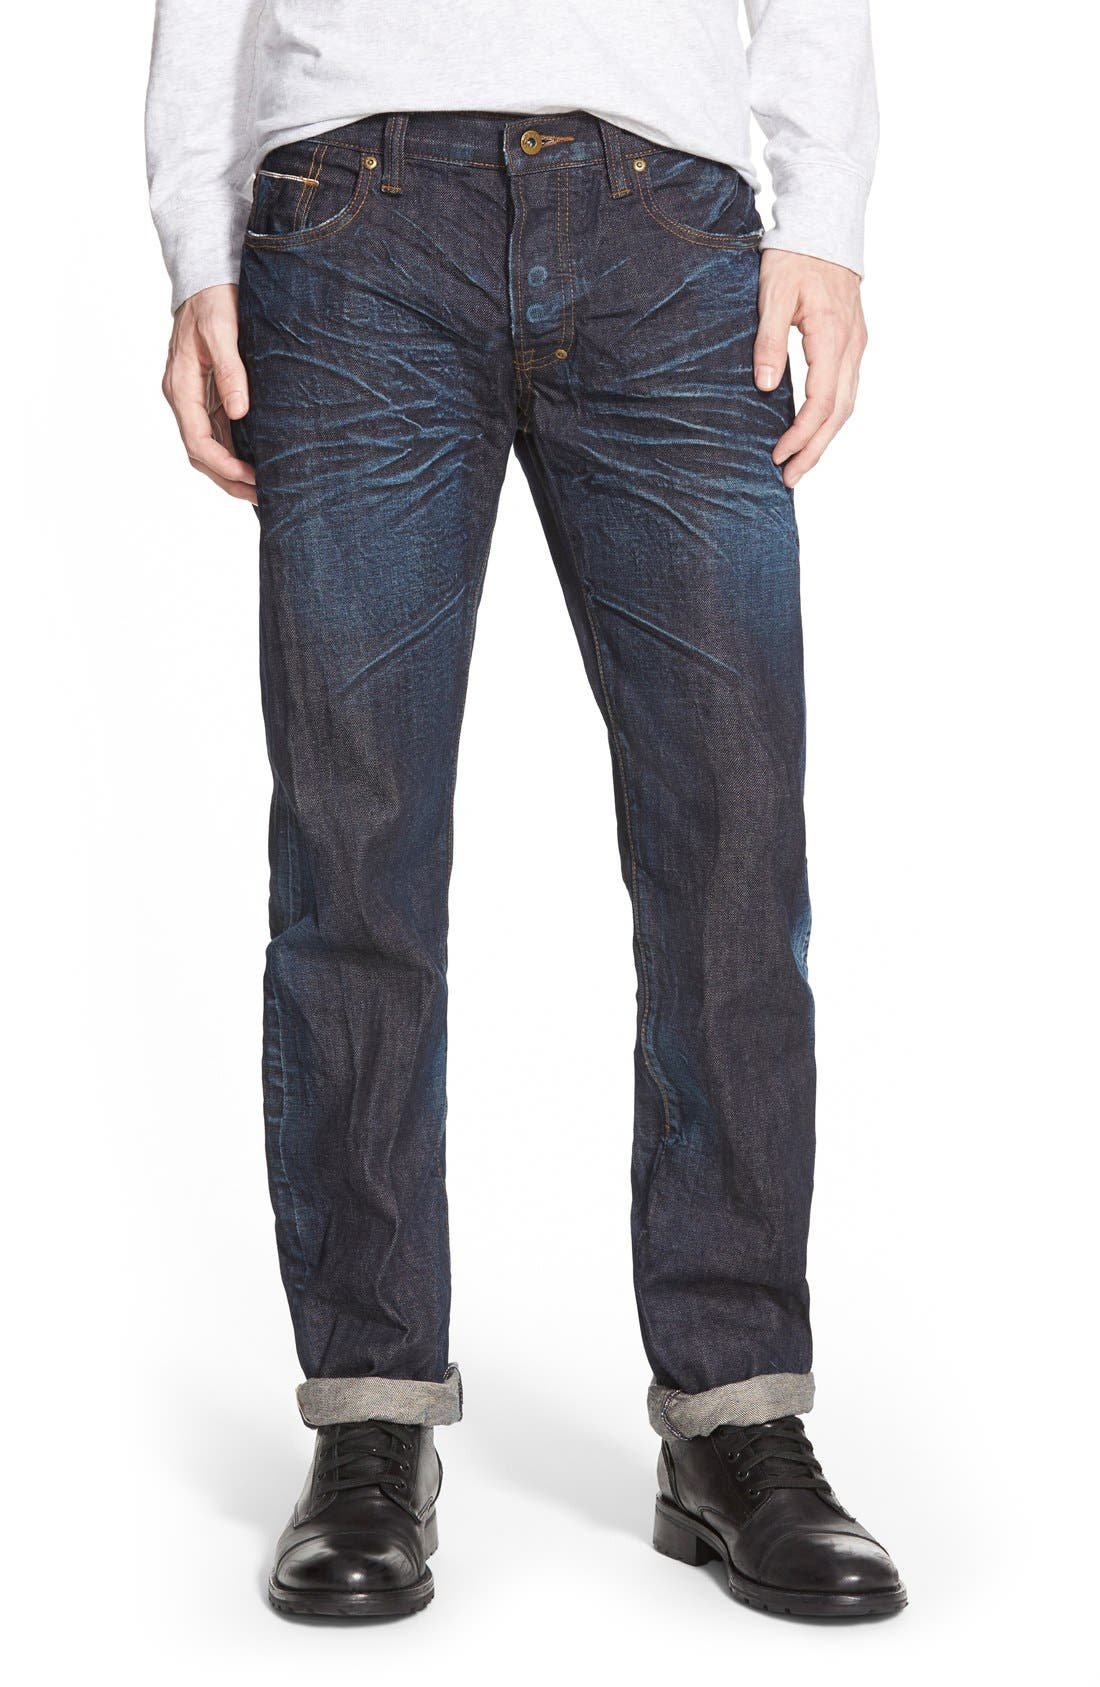 'Barracuda' Straight Leg Selvedge Jeans,                         Main,                         color, 6 Month Wash